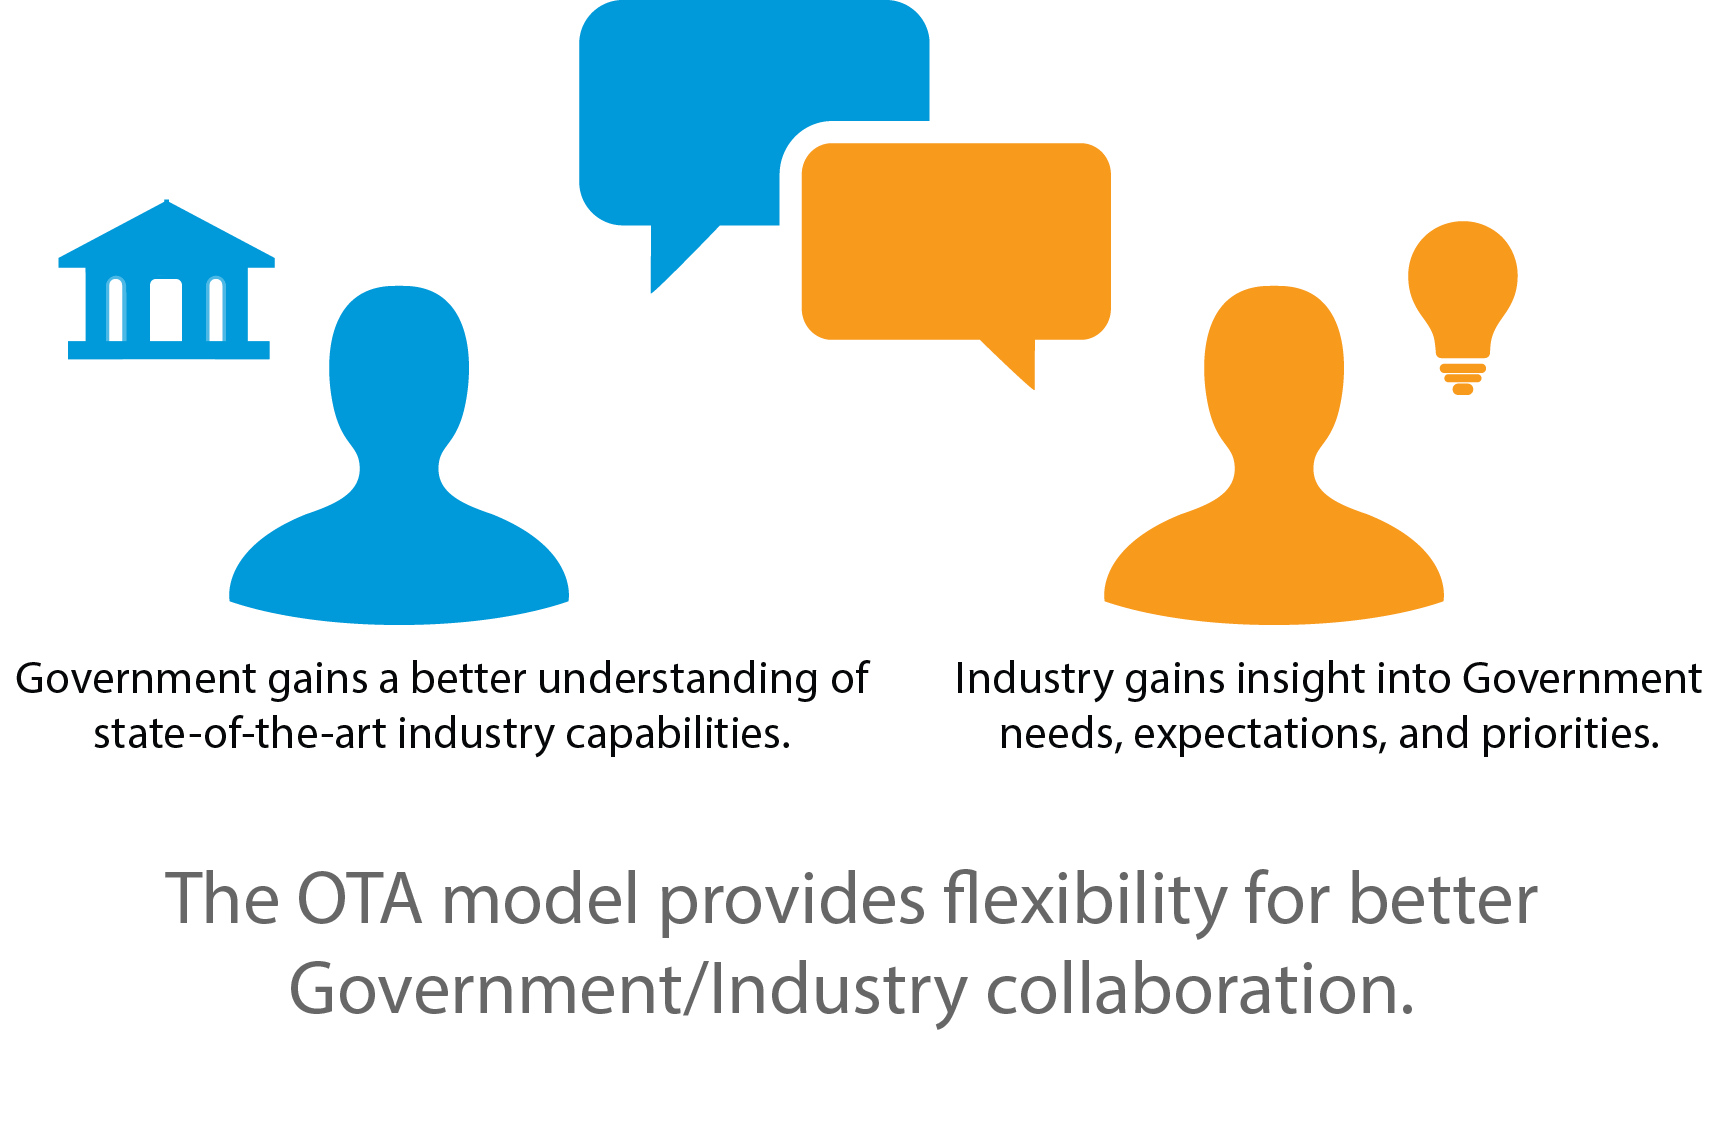 Government gains a better understanding of state-of-the-art industry capabilities. Industry gains insight into Government needs, expectations, and priorities. The OTA model provides flexibility for better Government/Industry collaboration.